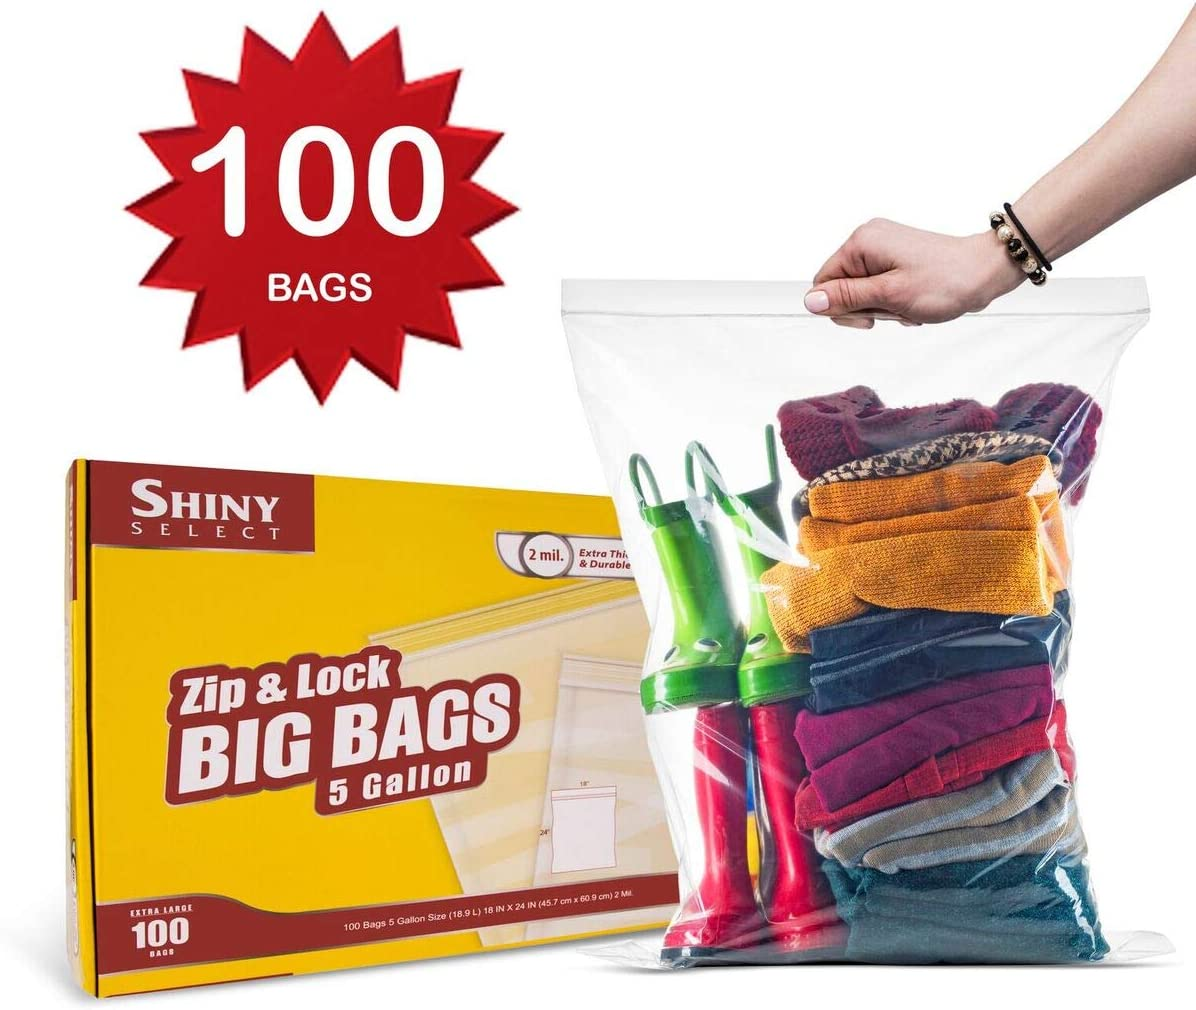 "[ 100 Count ] Extra Large Super Big Bags, Zip & Lock Jumbo Big Plastic Bags, 18""x24"" Clear 5 Gallon Bags, 100 Count"